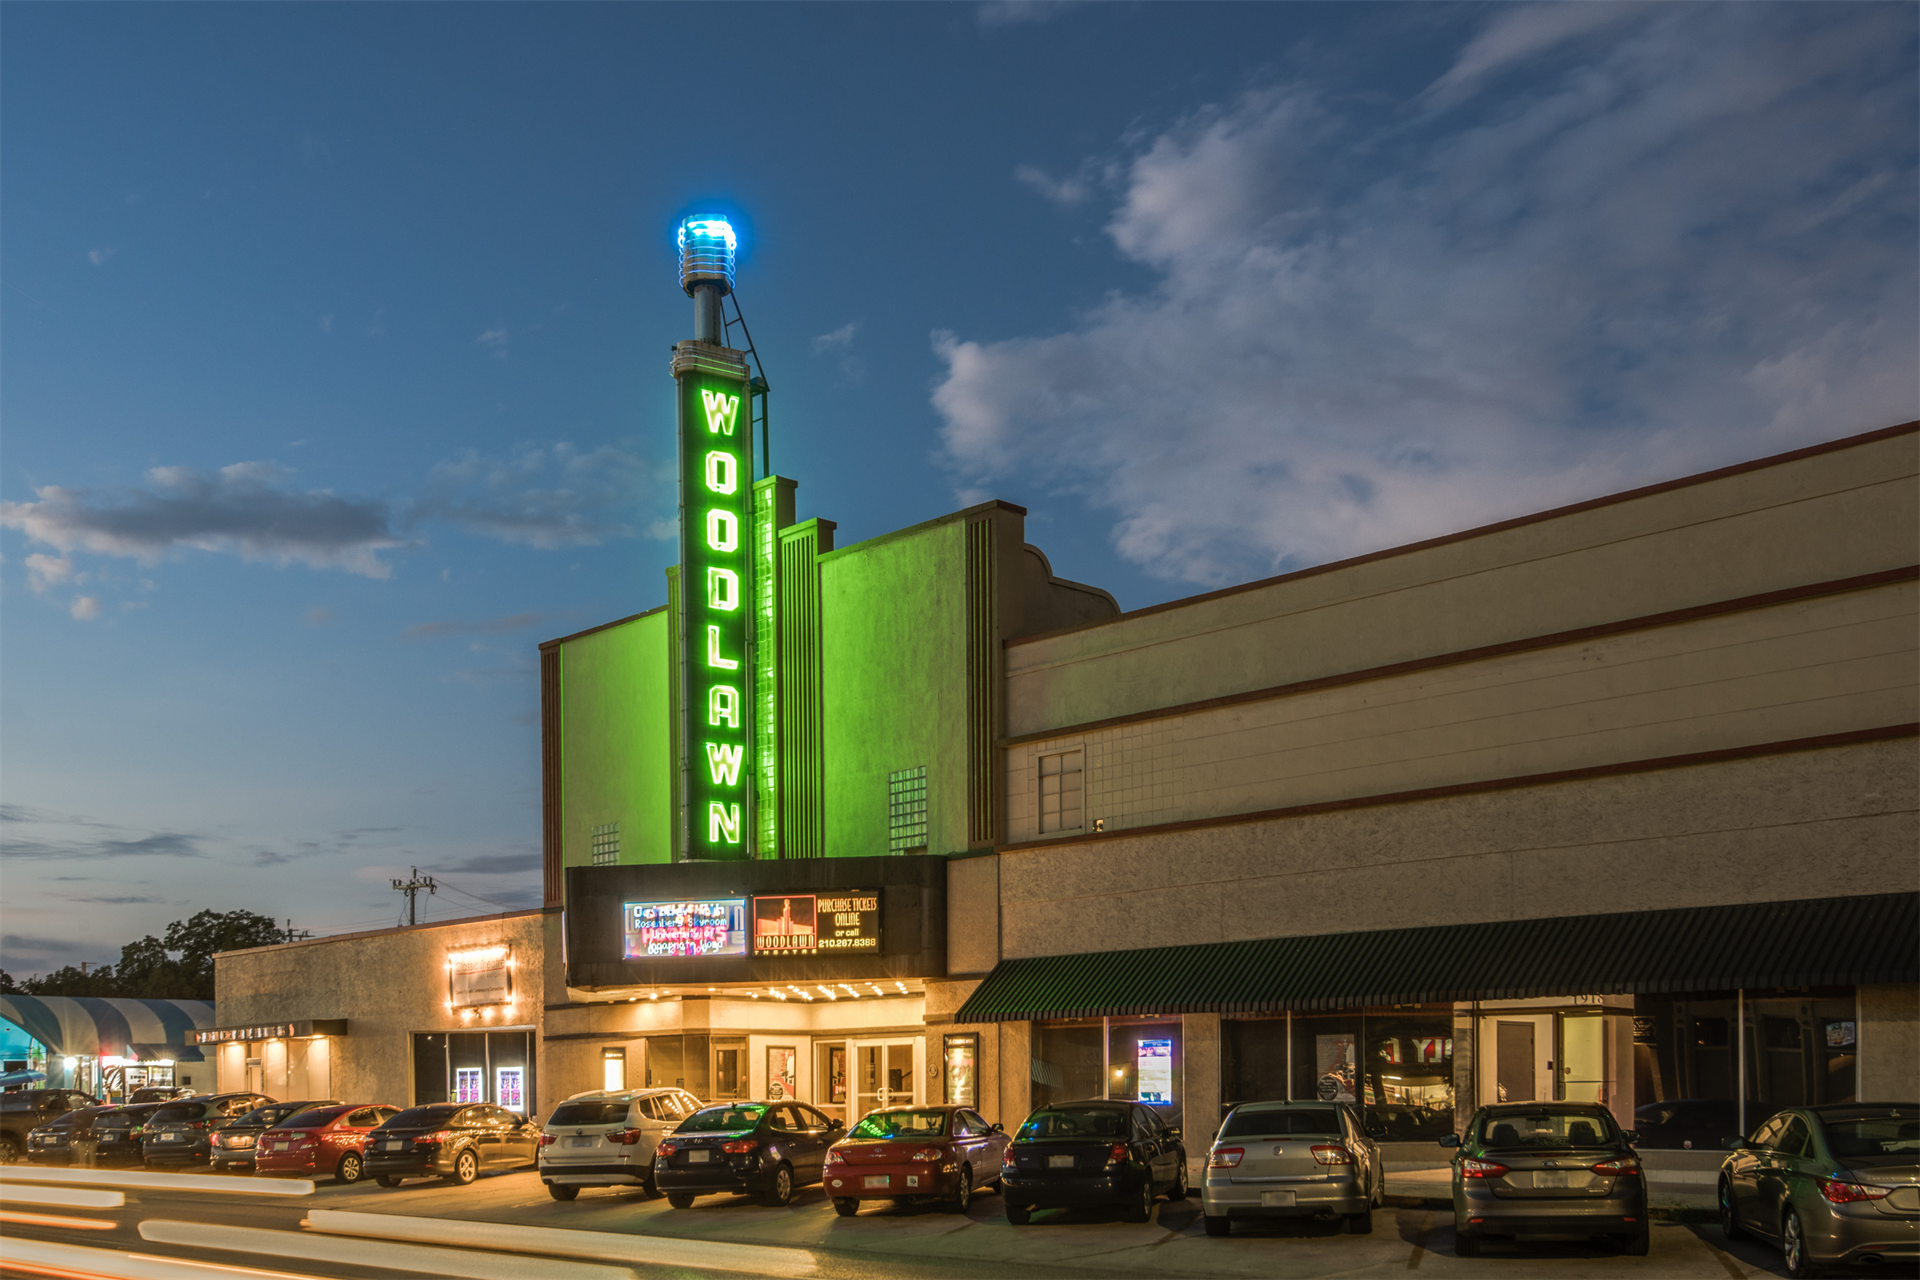 Woodlawn Theatre building at 1924 Fredericksburg San Antonio, Texas 78201 United States